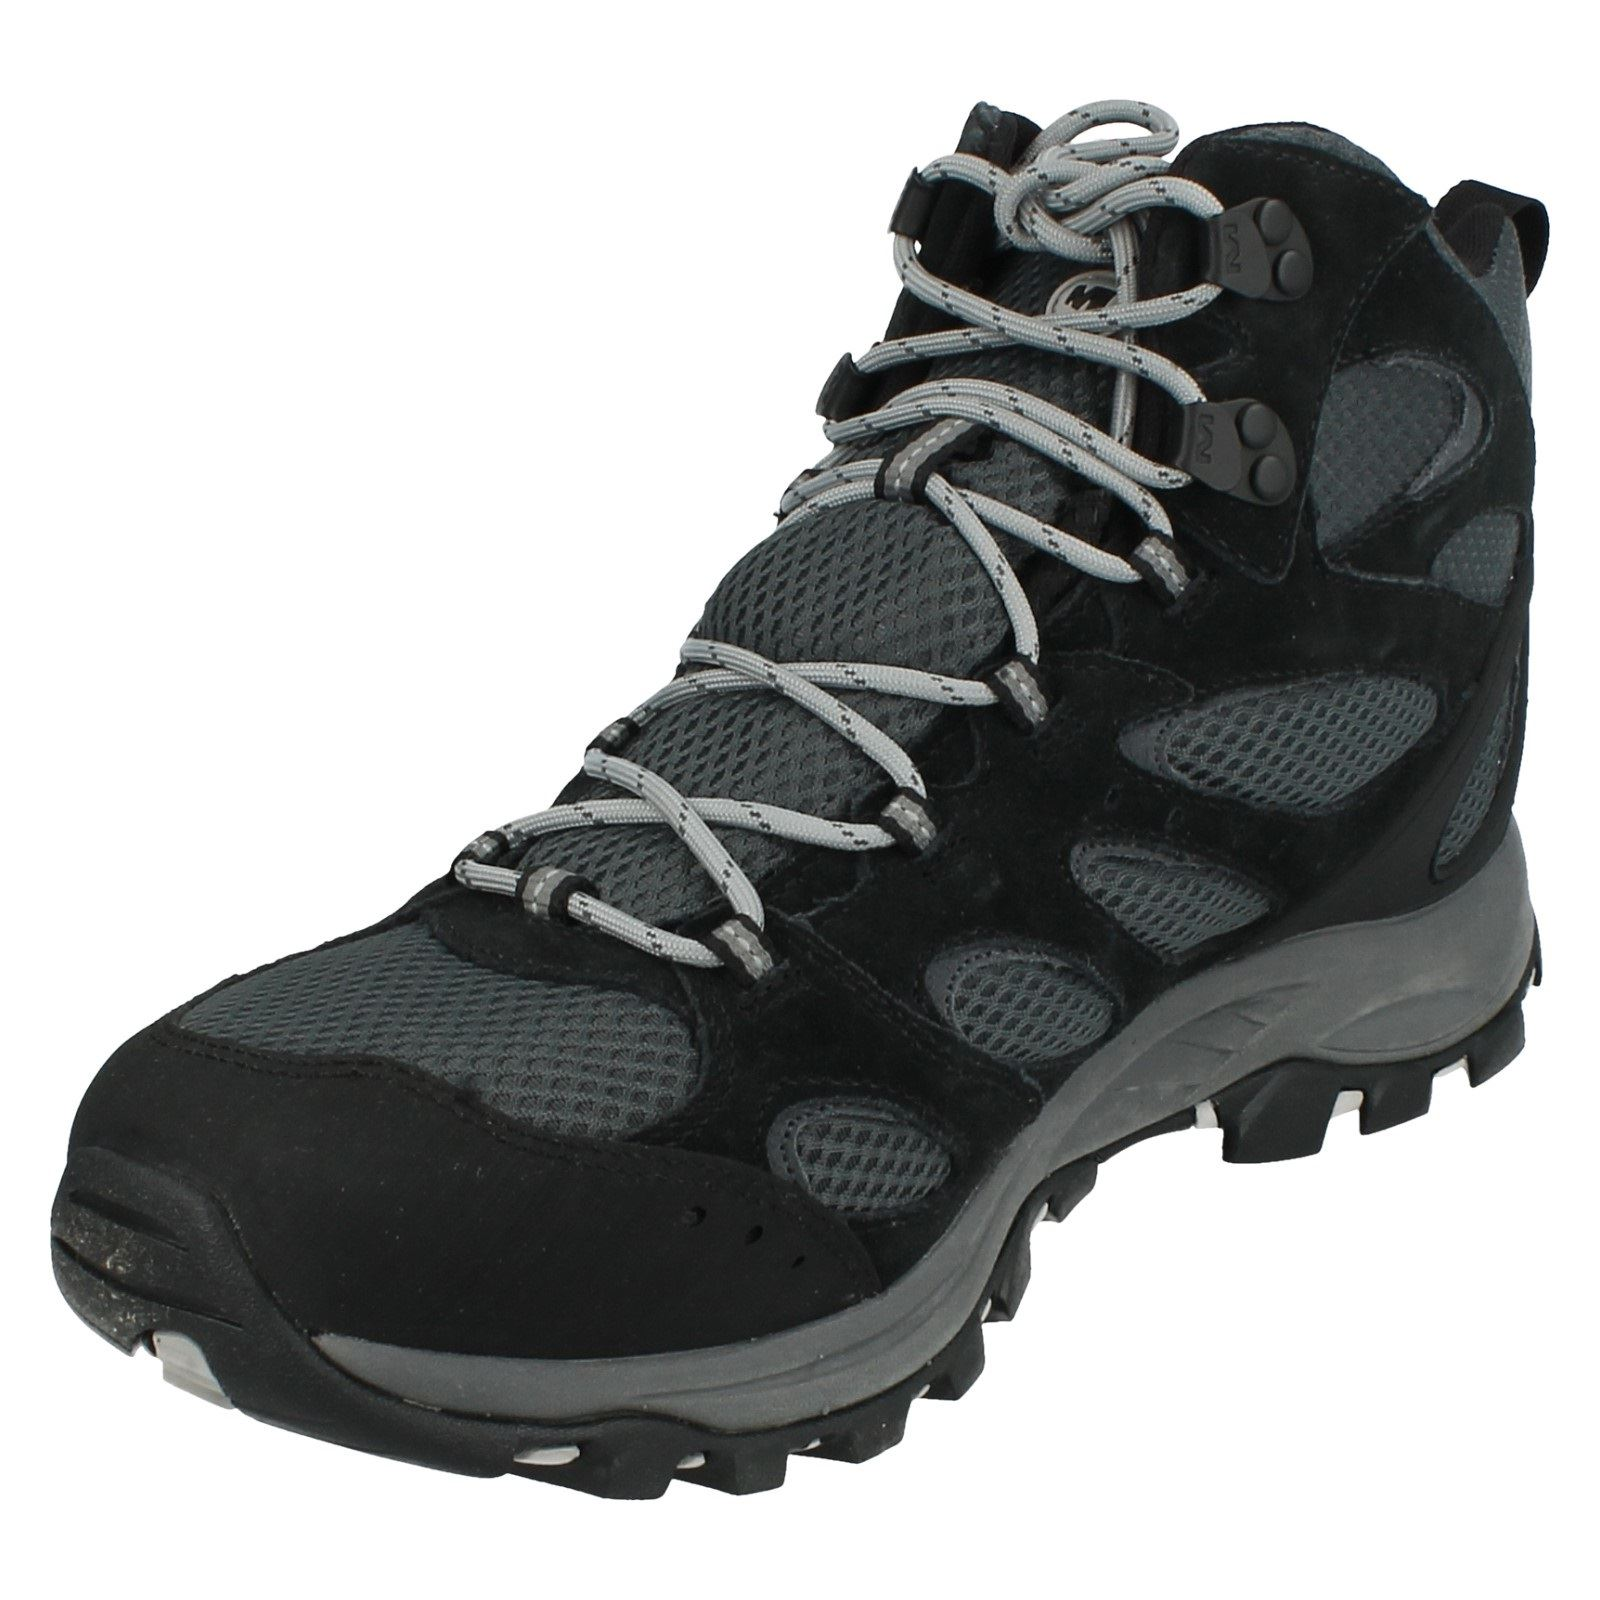 Mens Merrell Lace Up Walking Boots